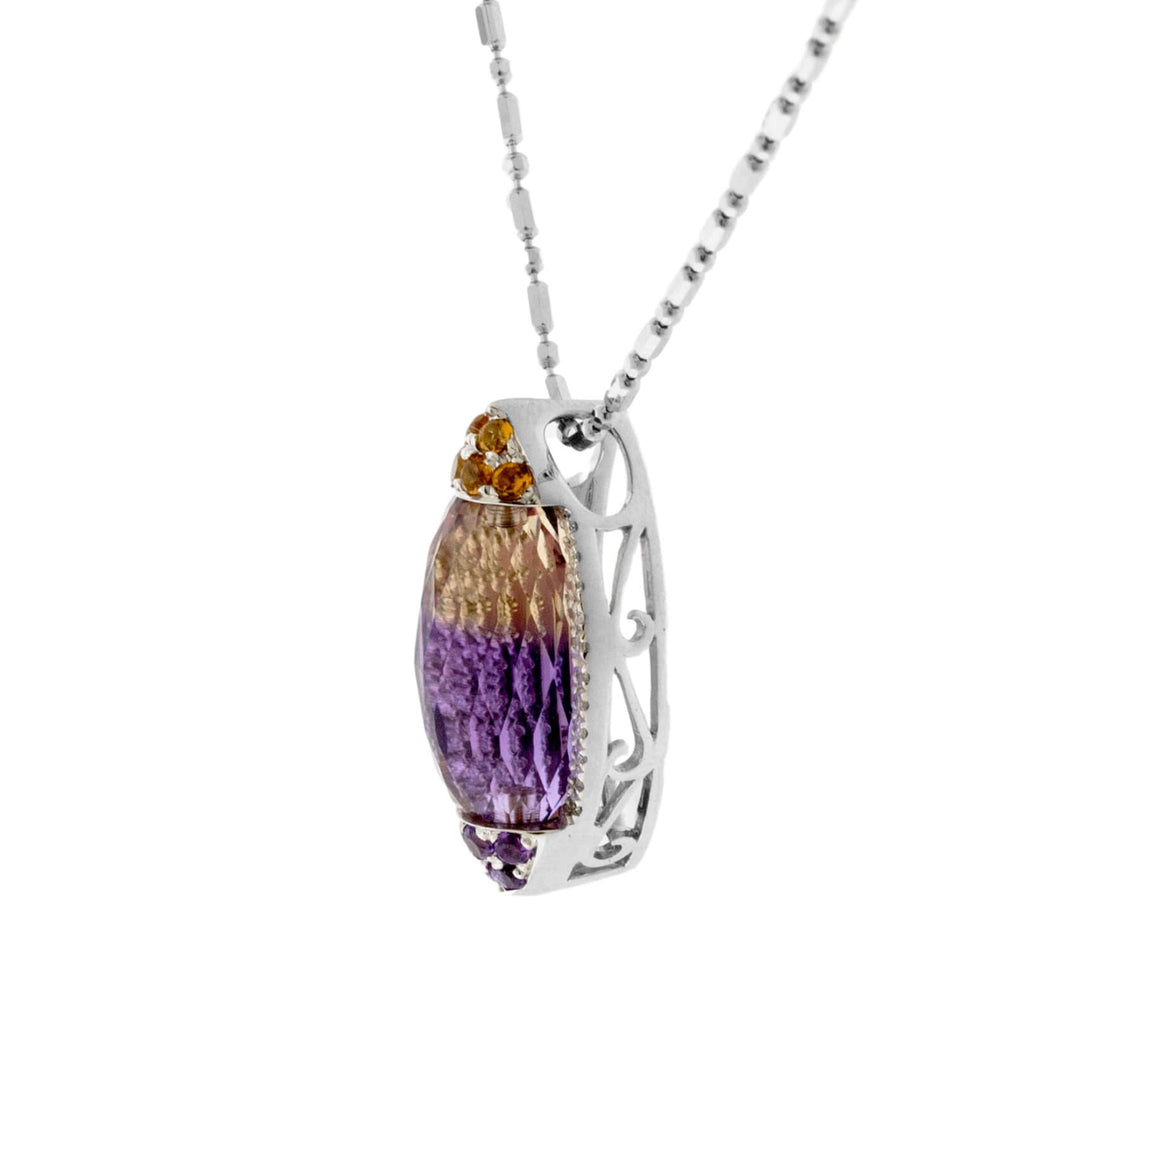 Carved Ametrine, Citrine, Amethyst, & Diamond Pendant